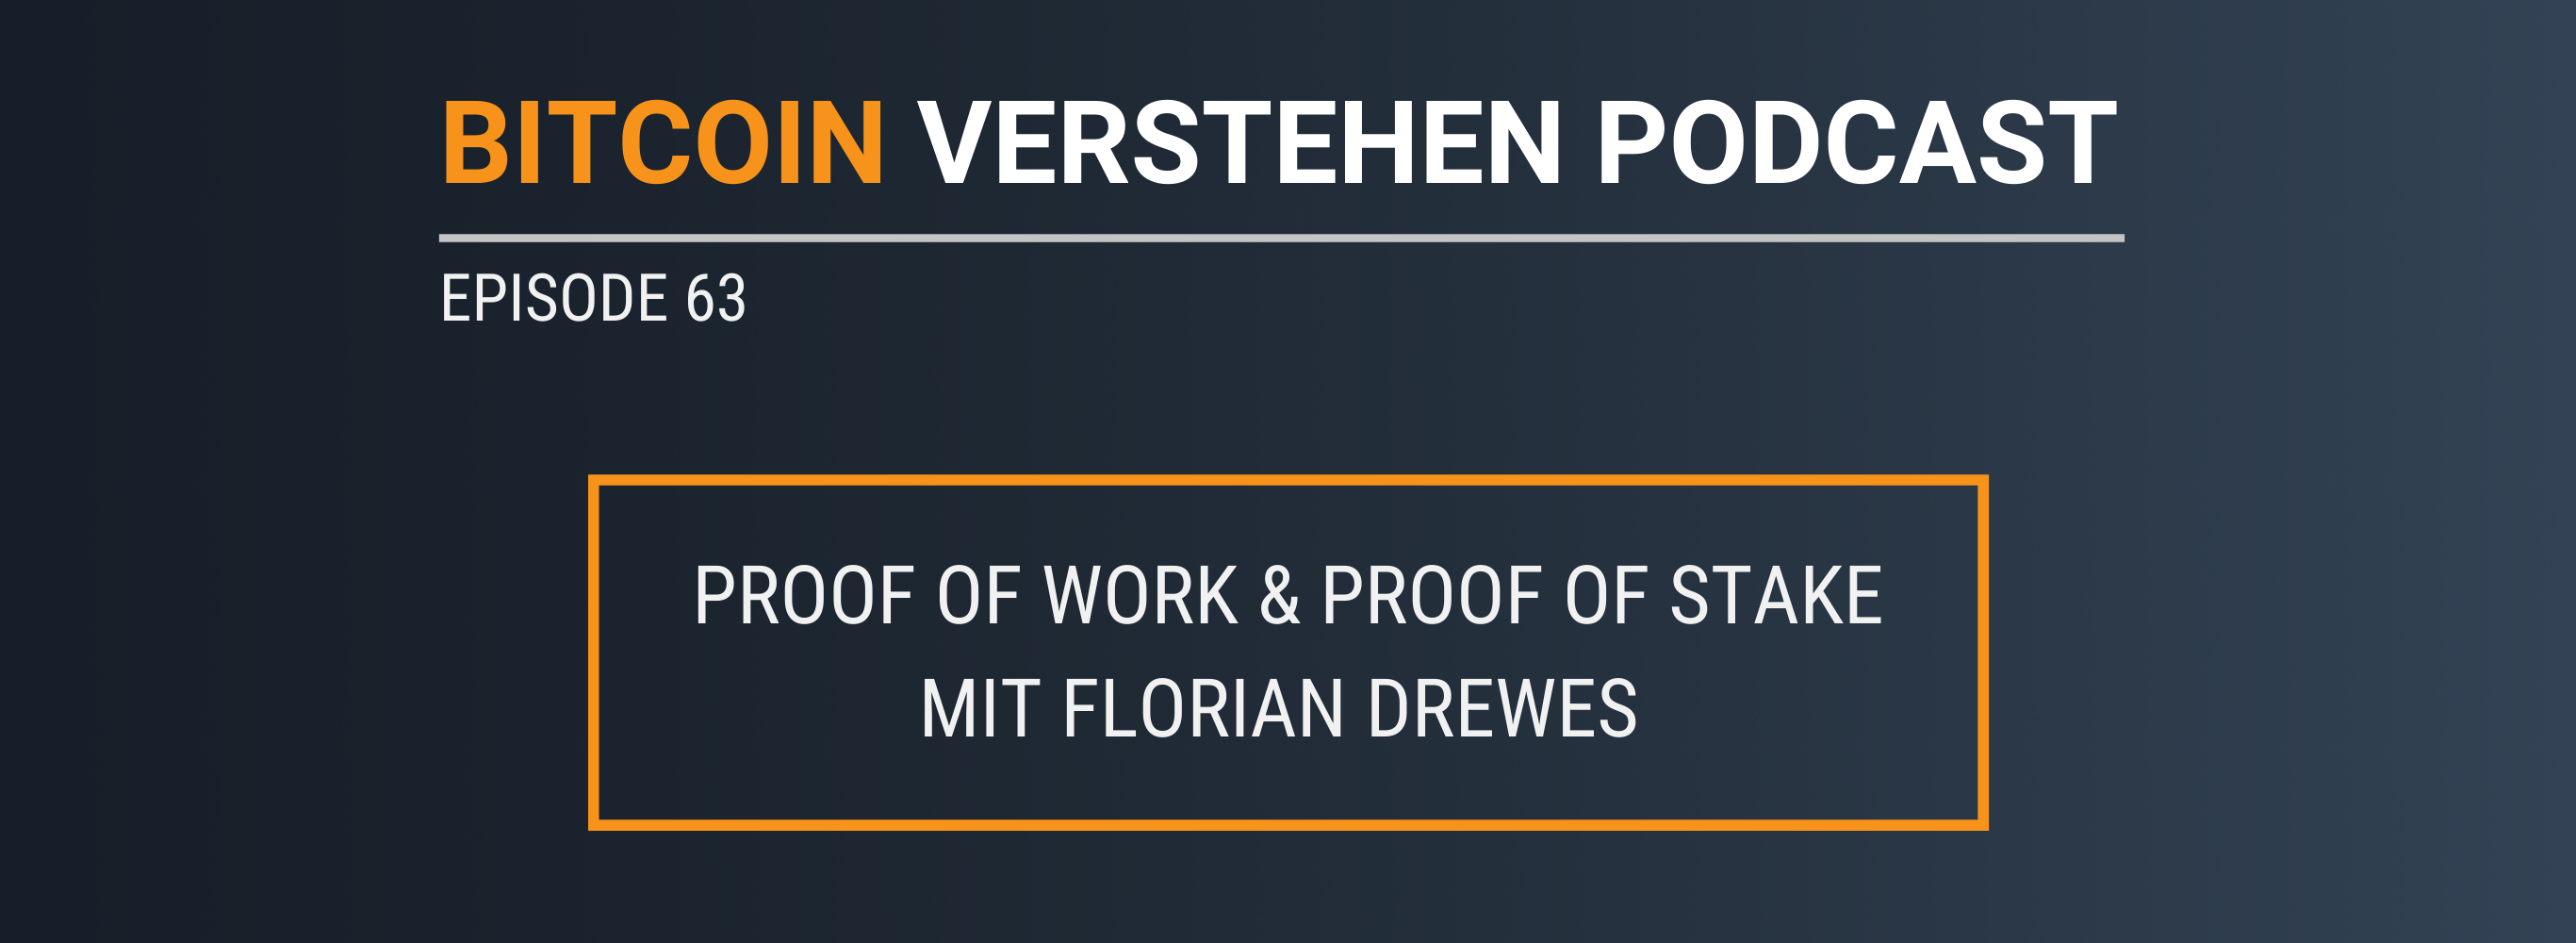 Episode 63 – Proof of Work & Proof of Stake mit Florian Drewes